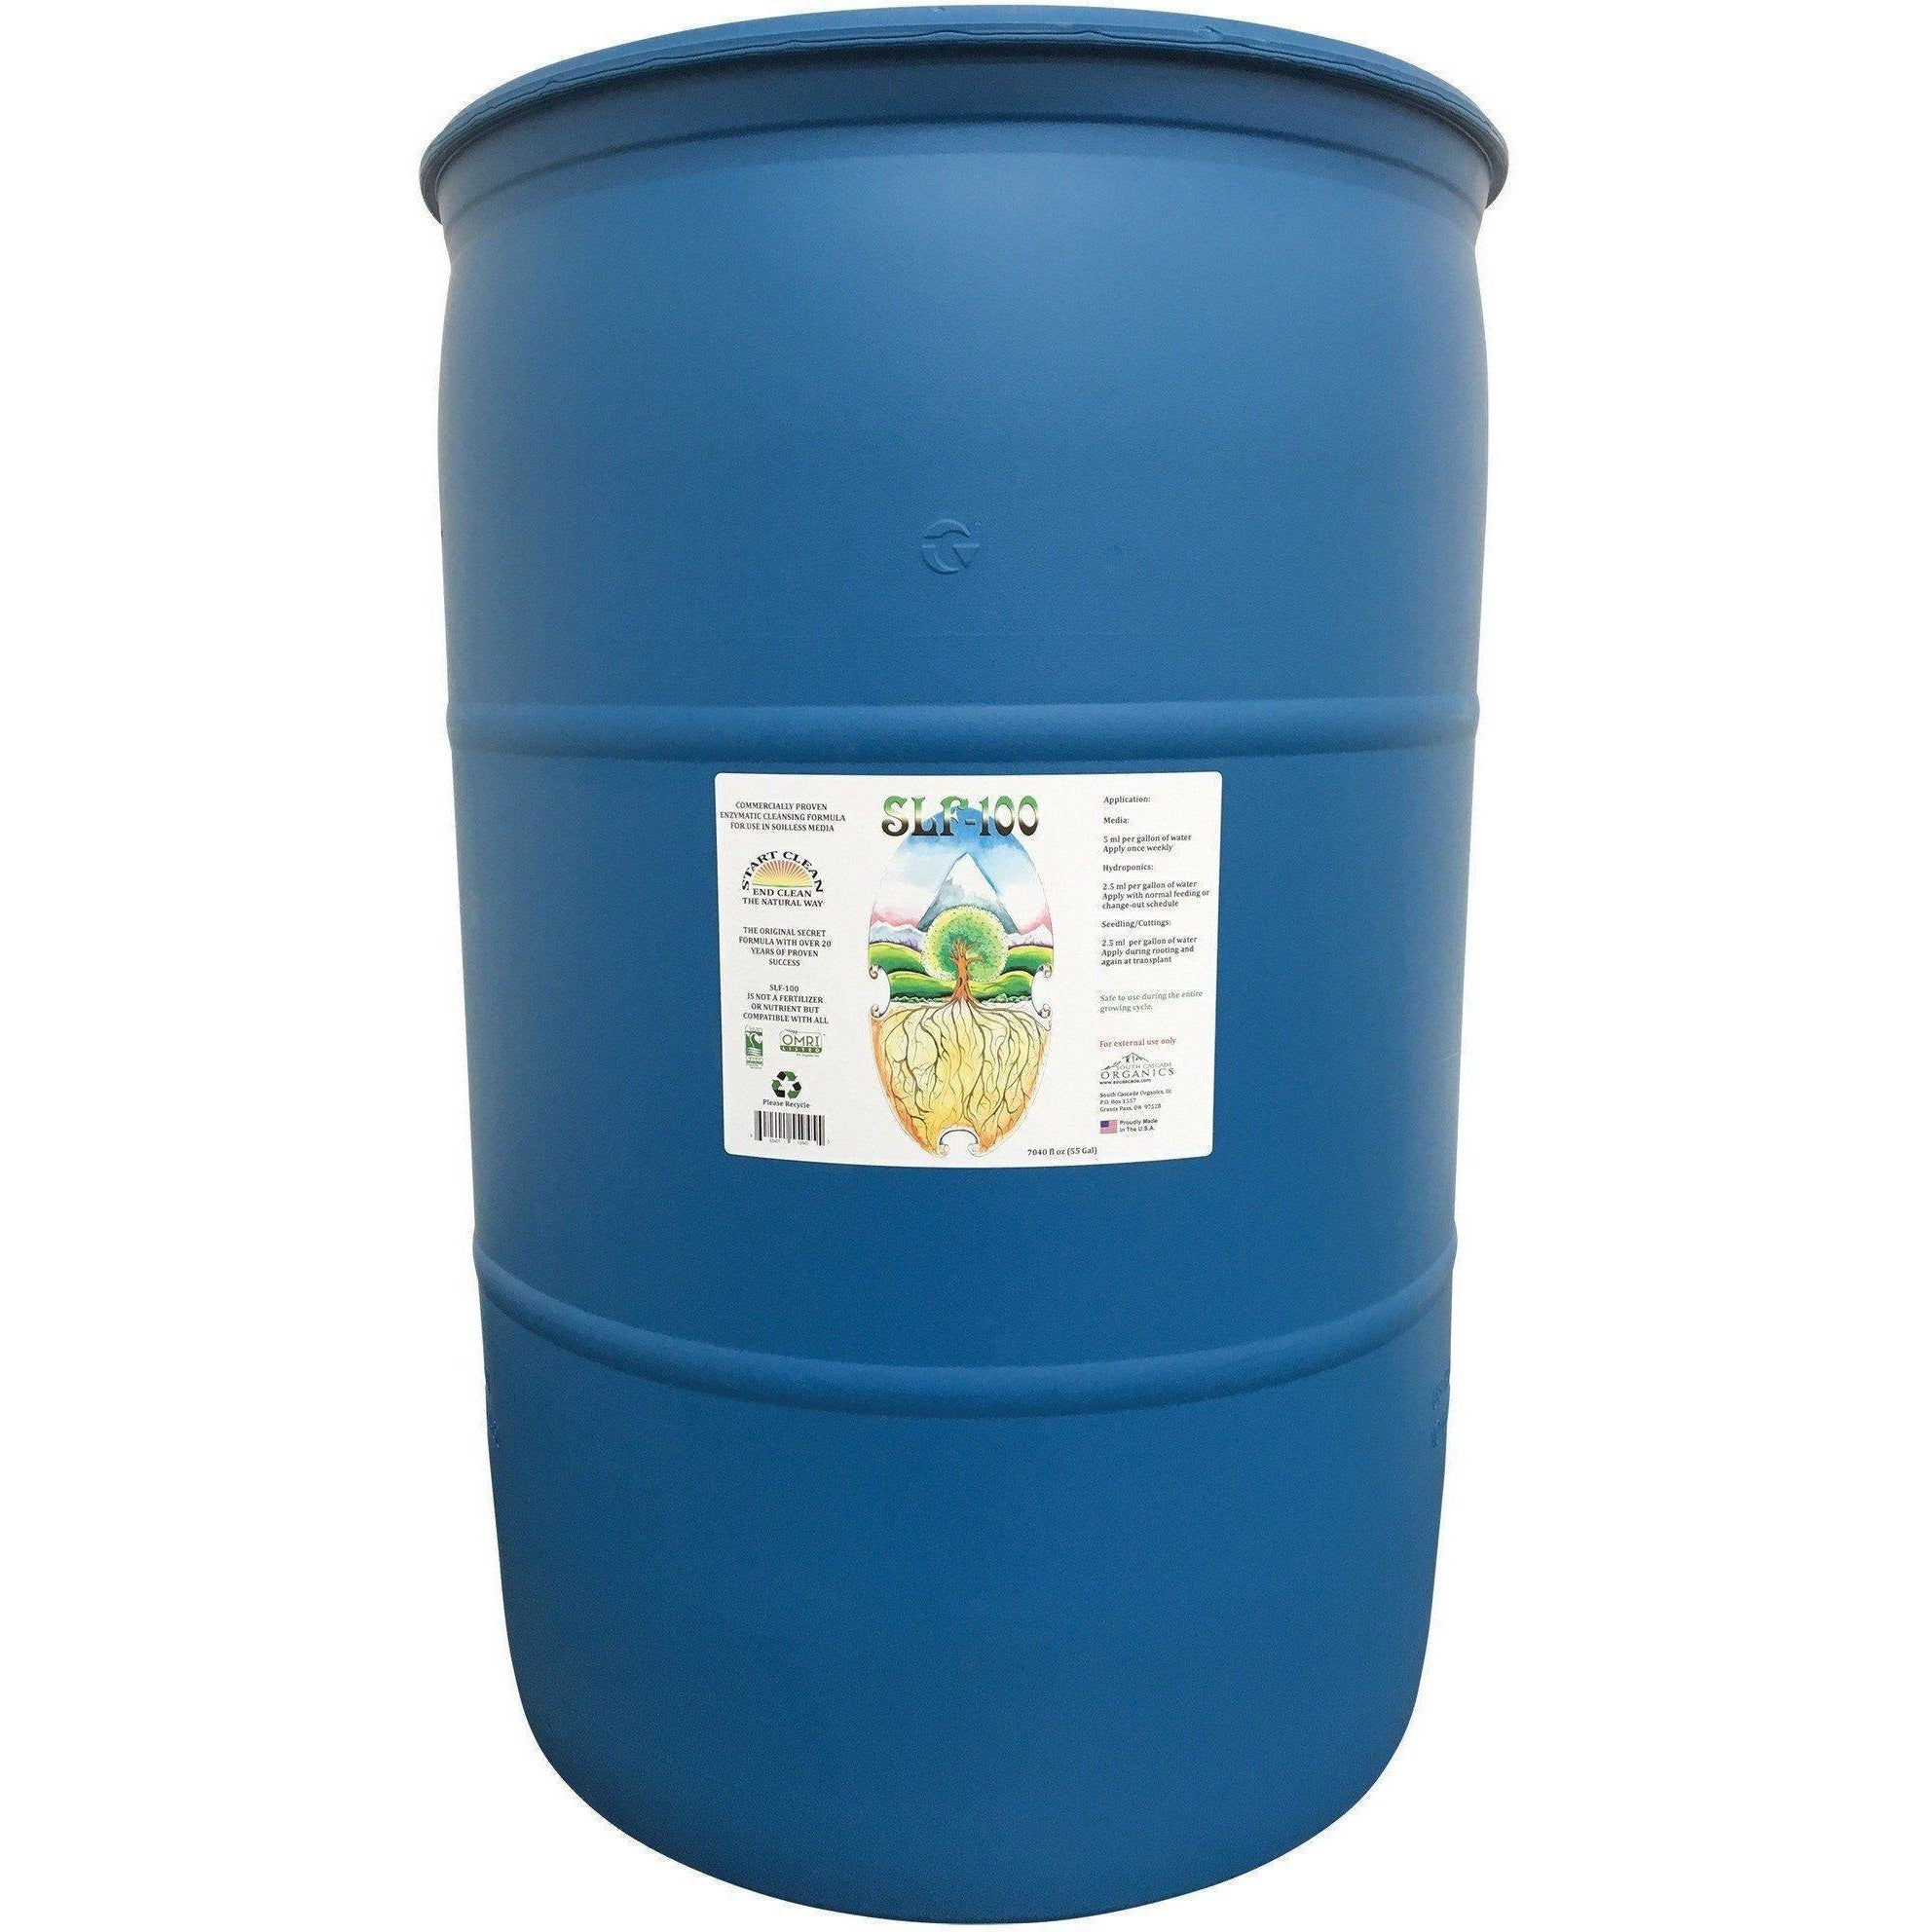 South Cascade Organics SLF-100, 55 gal | Special Order Only